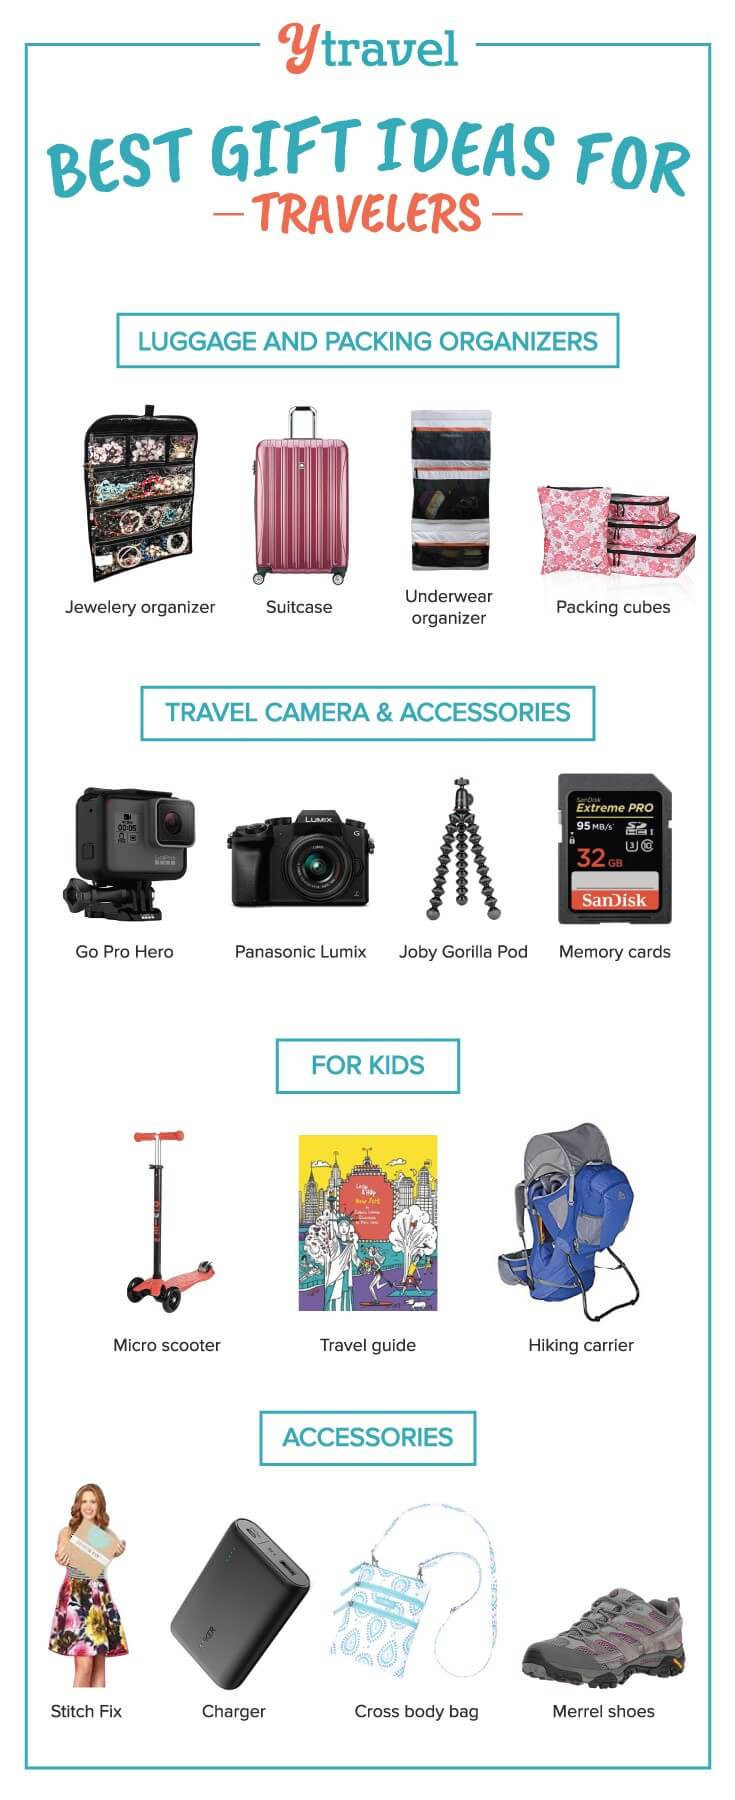 Looking for the best gift ideas for travelers? This list of the best travel gifts includes gifts for women, kids, electronics, packing essentials and more!